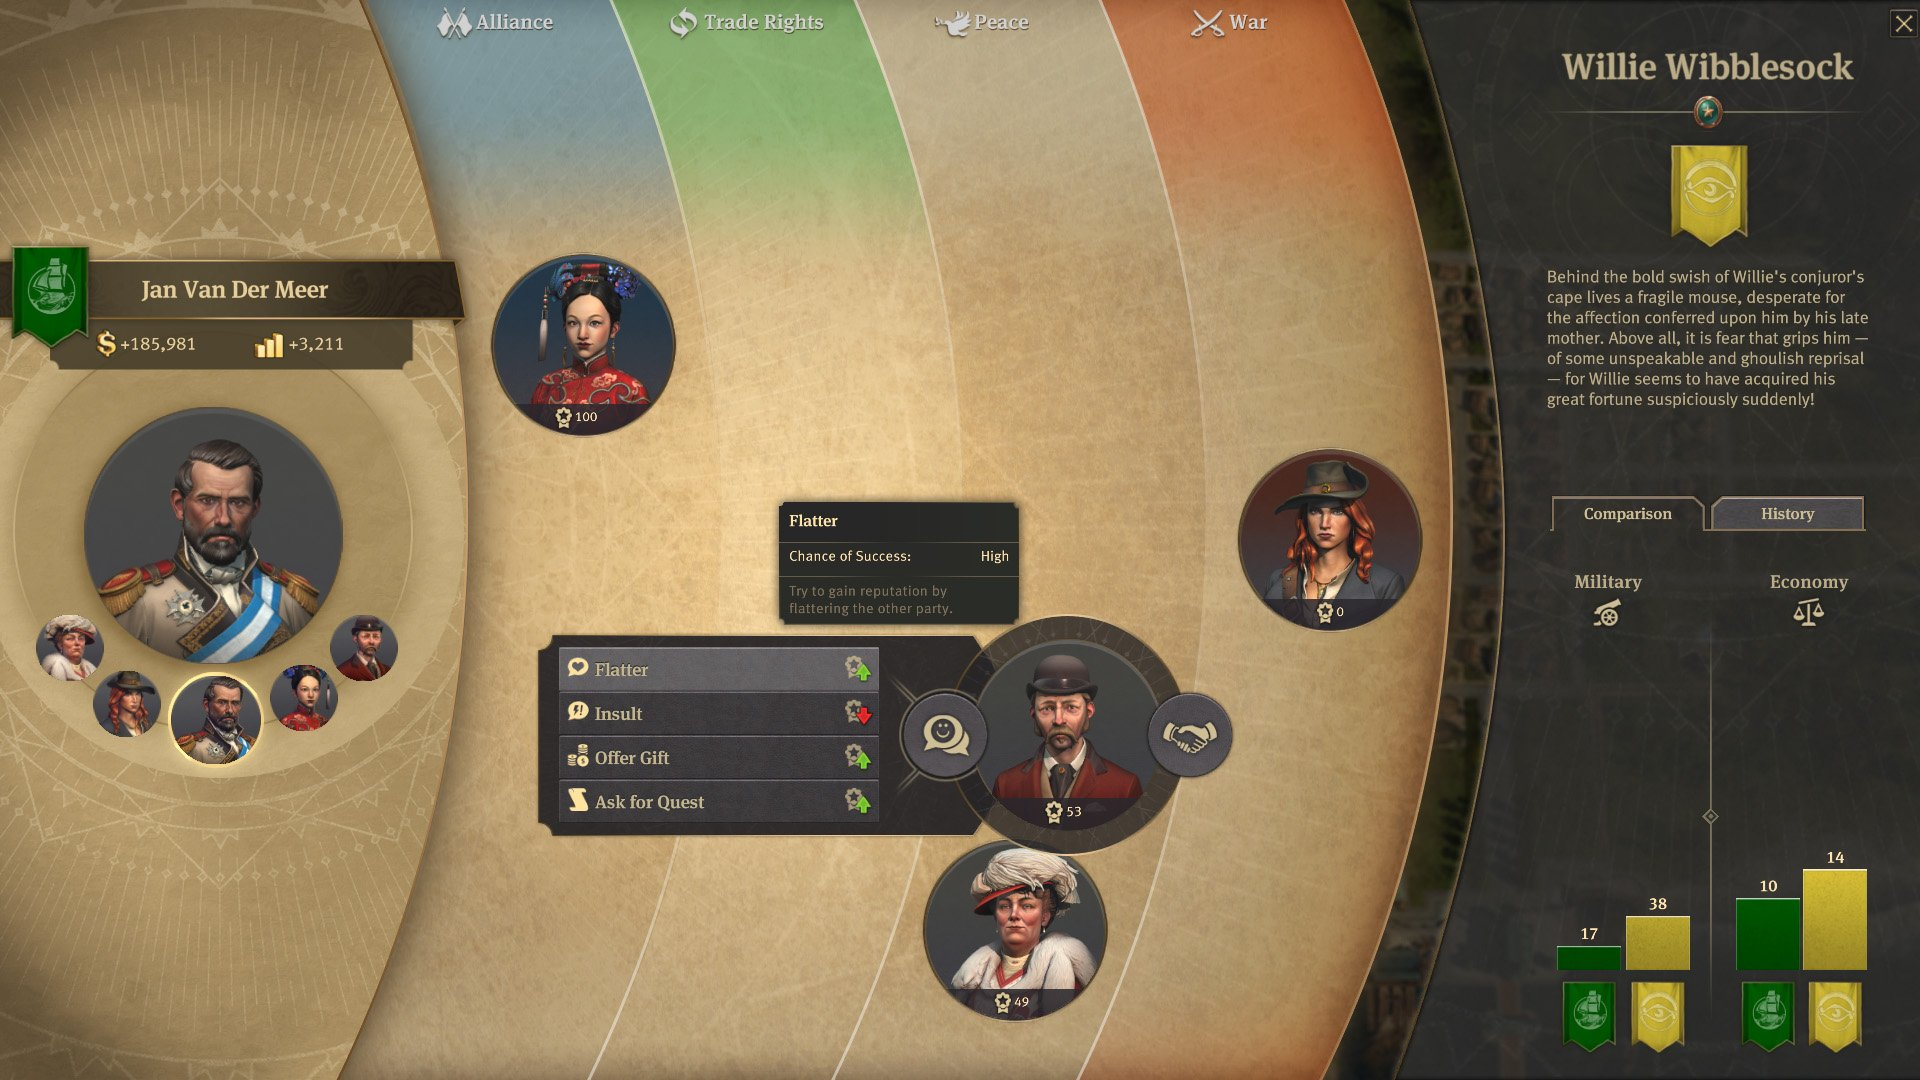 Diplomatic relations are as important in Anno 1800 as they are in real life.